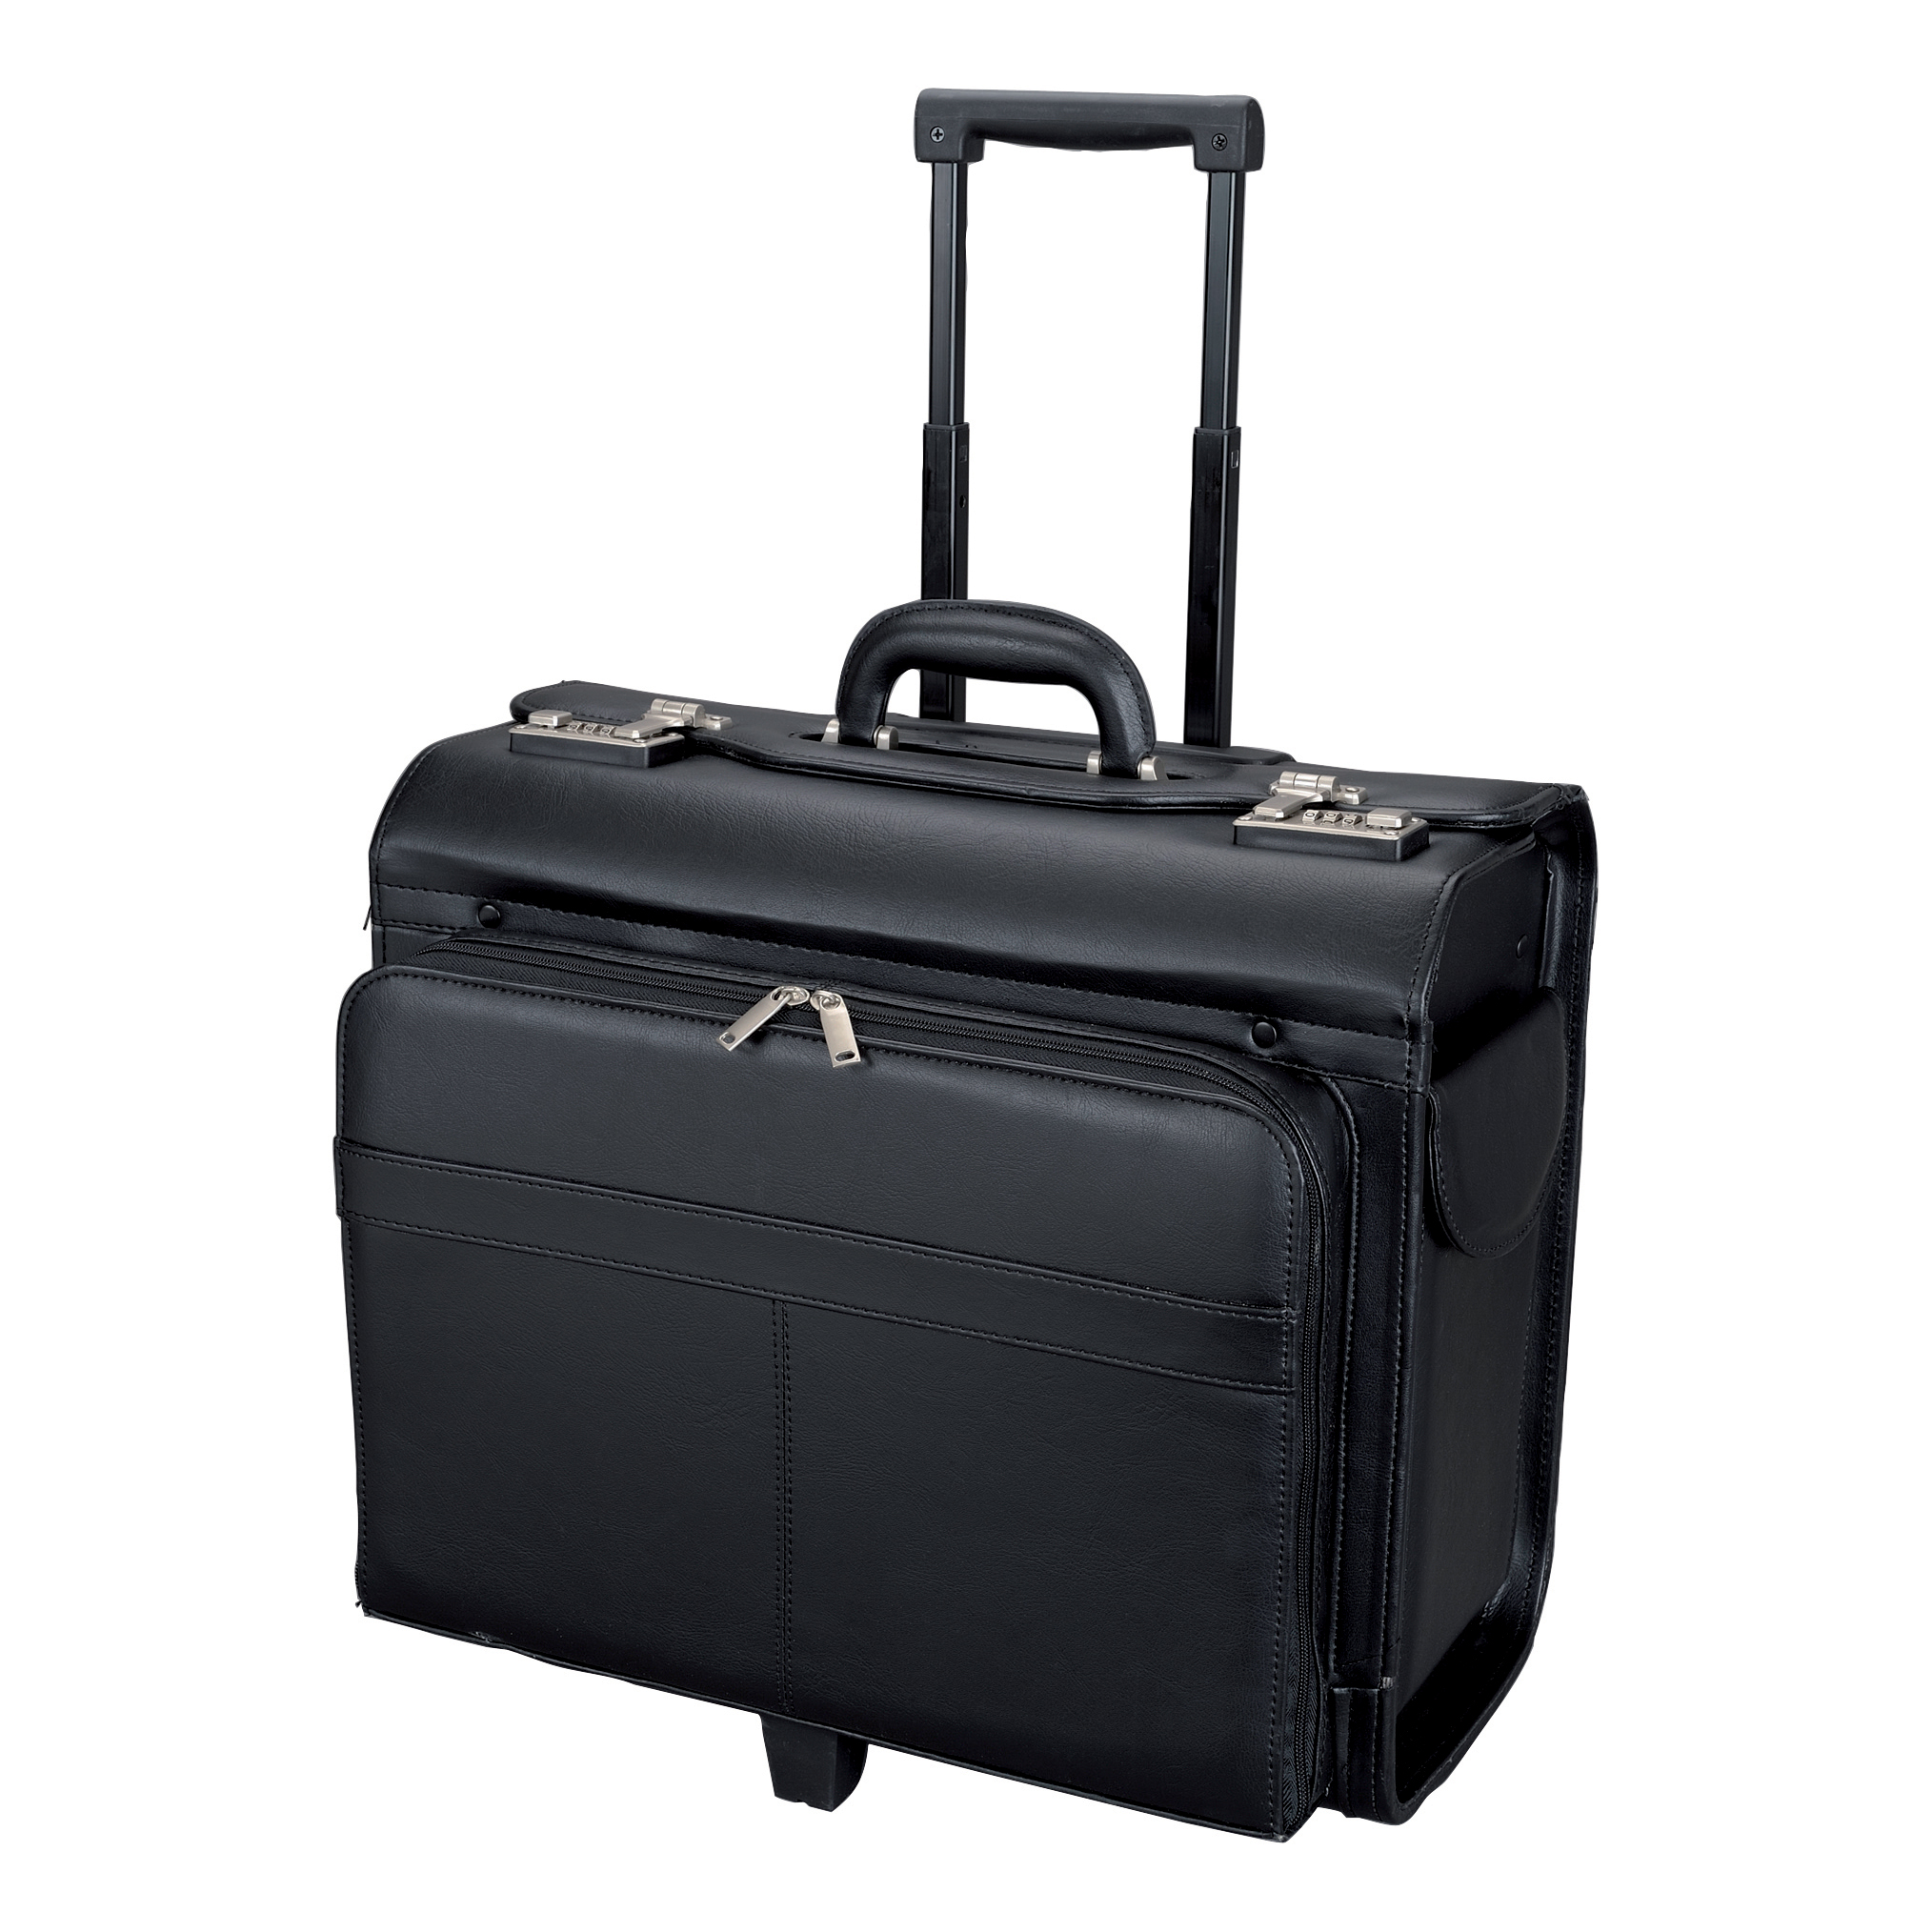 b96ace0bd87 Alassio San Remo Trolley Pilot Case Multi-section 2 Combination Locks  Leather-look Black Ref 45030 - Quest Systems